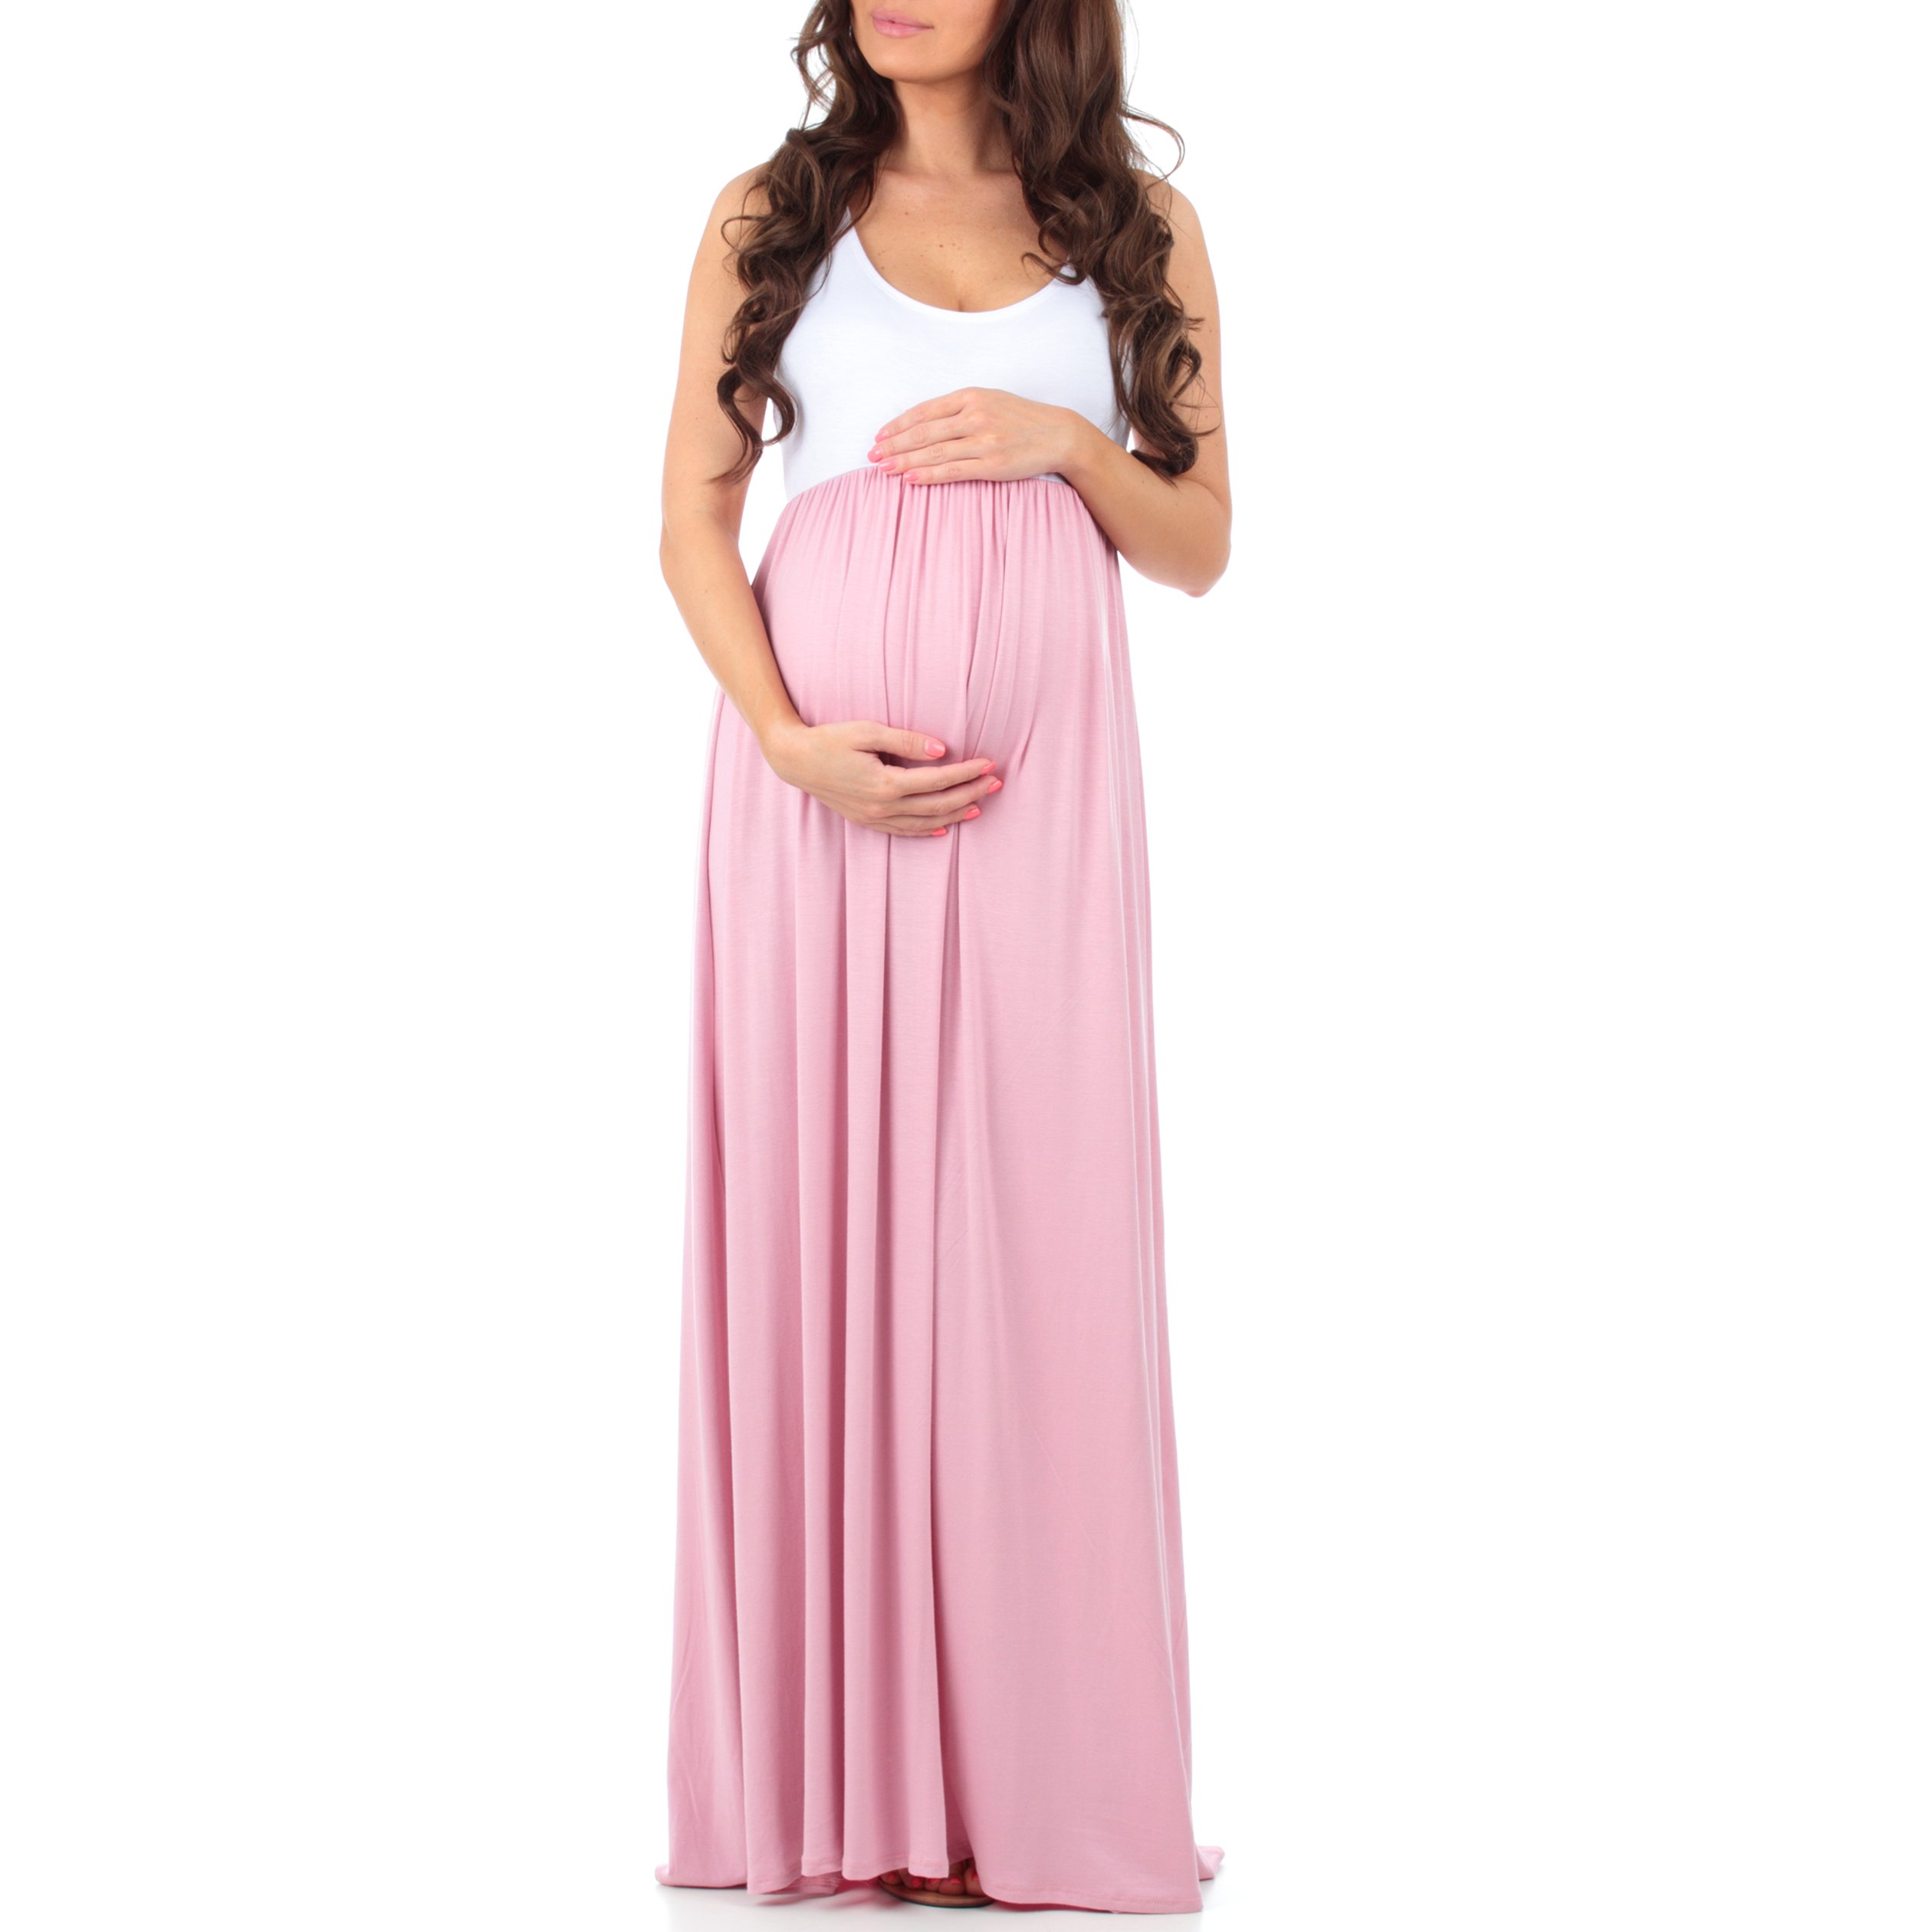 Women's Sleeveless Ruched Color Block Maxi Maternity Dress by Mother Bee - Made in USA